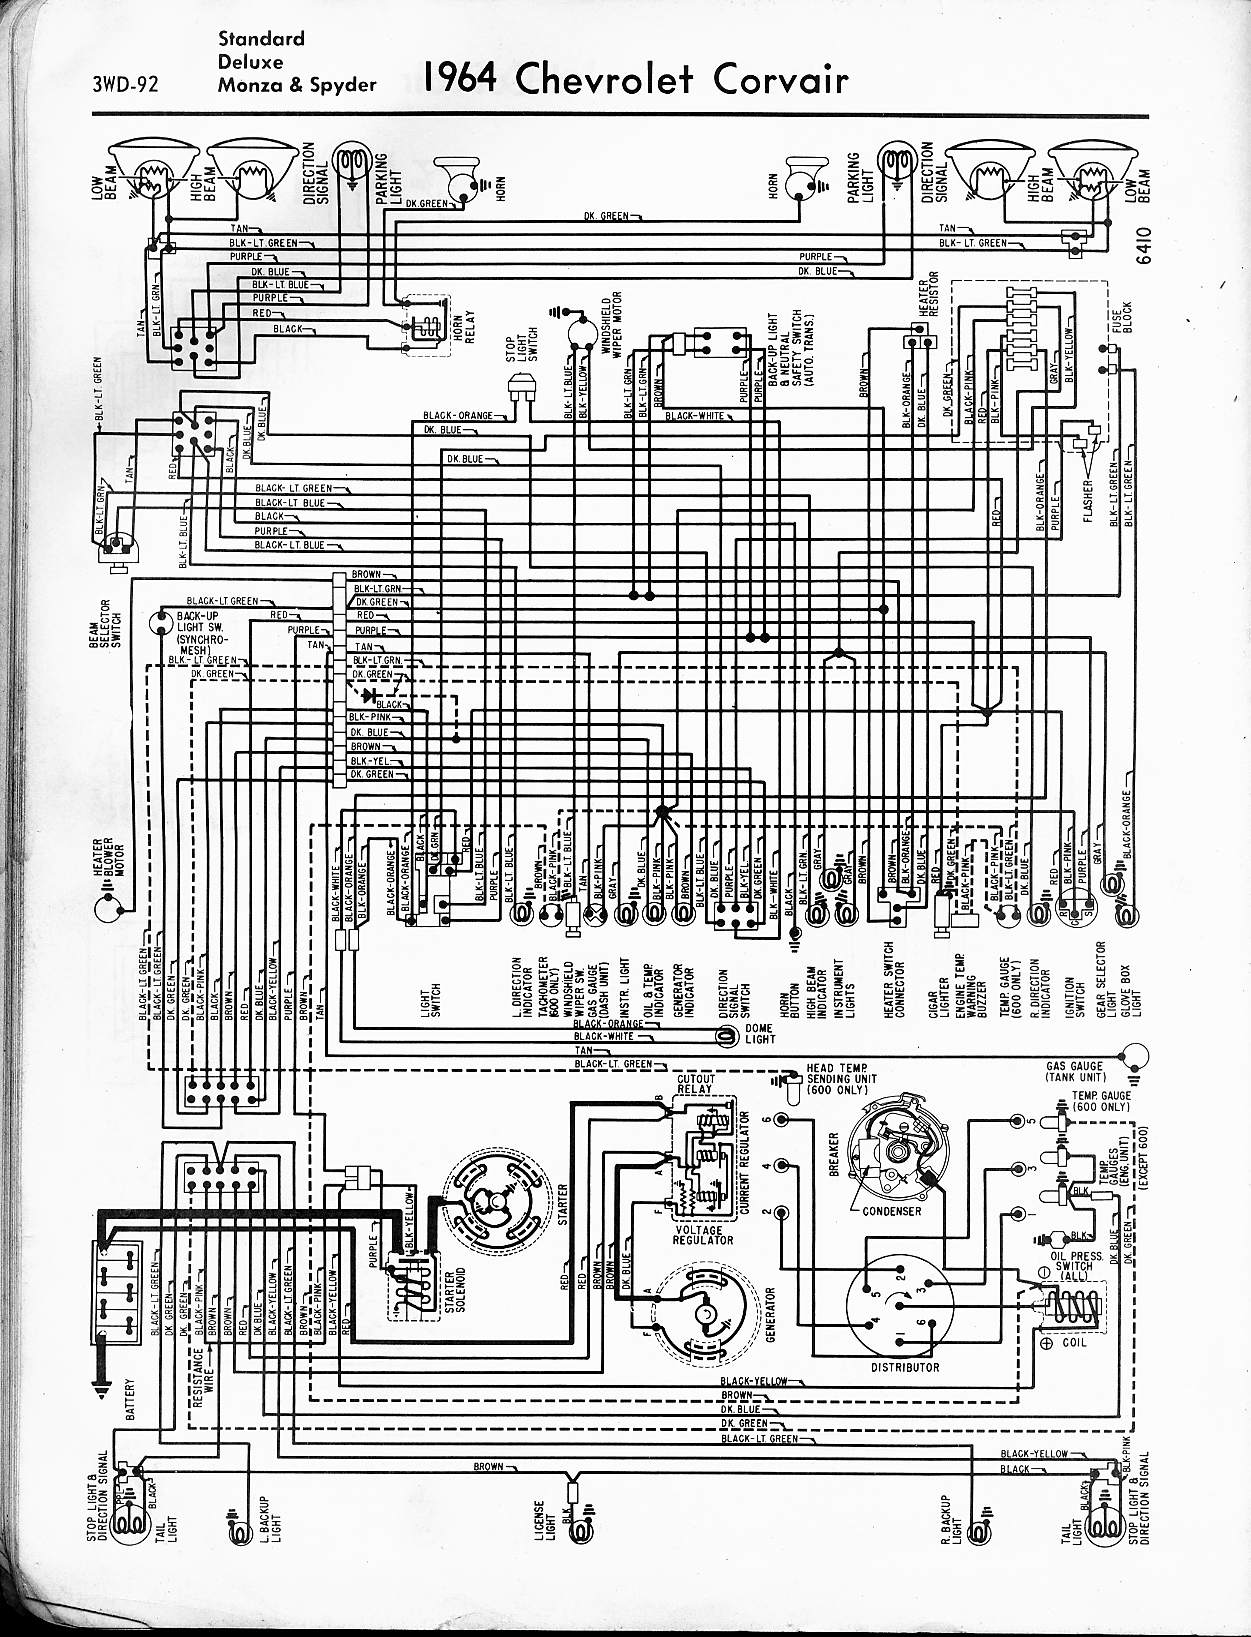 MWireChev64_3WD 092 57 65 chevy wiring diagrams 1966 chevy c10 wiring diagram at alyssarenee.co